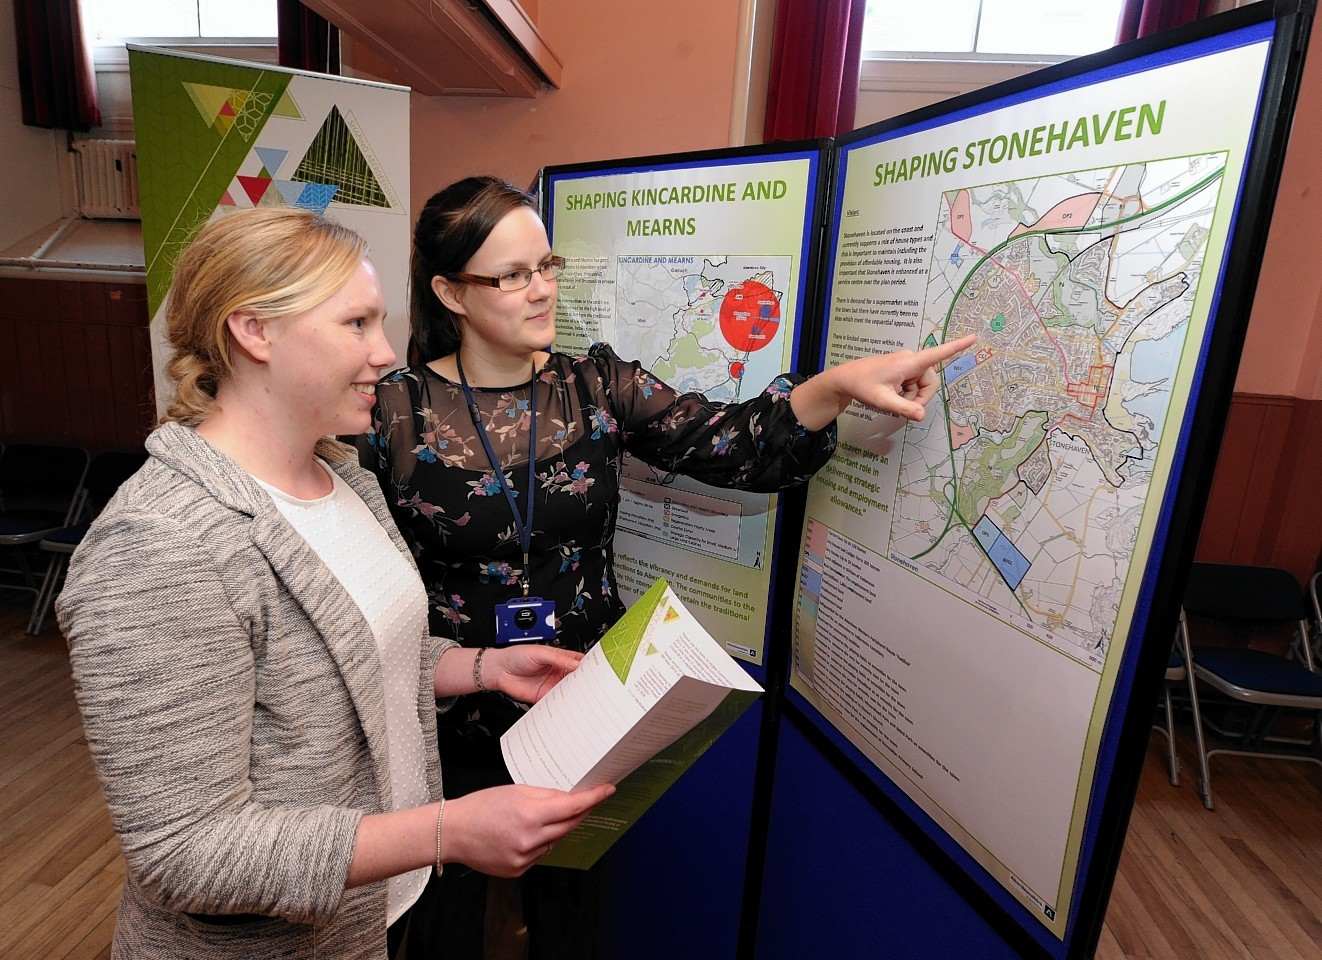 Residents of Stonehaven and the Mearns are getting the chance to view proposal